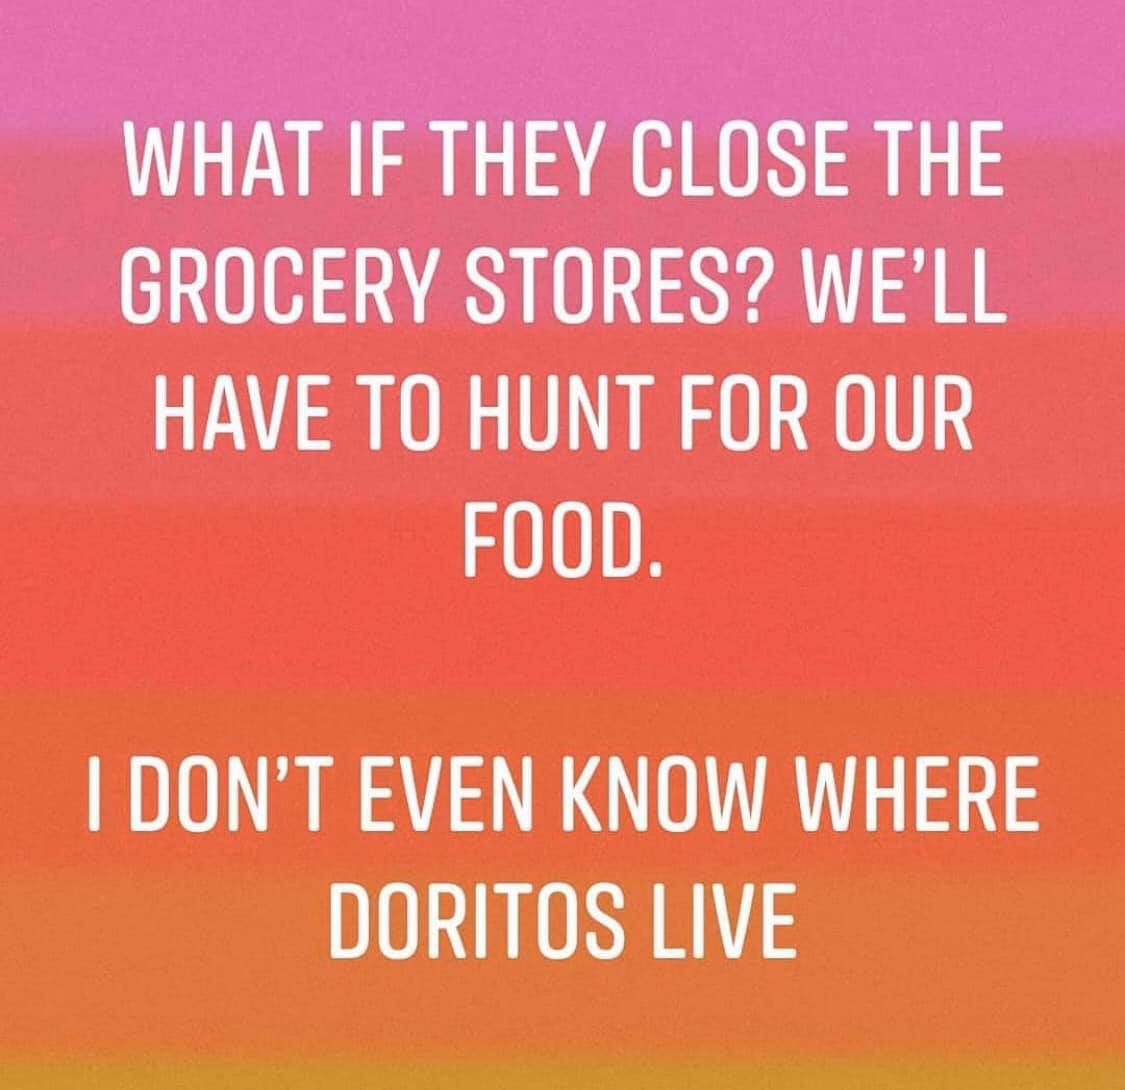 What if they close the grocery stores – We will have to hunt for food – I dont even know where doritos live